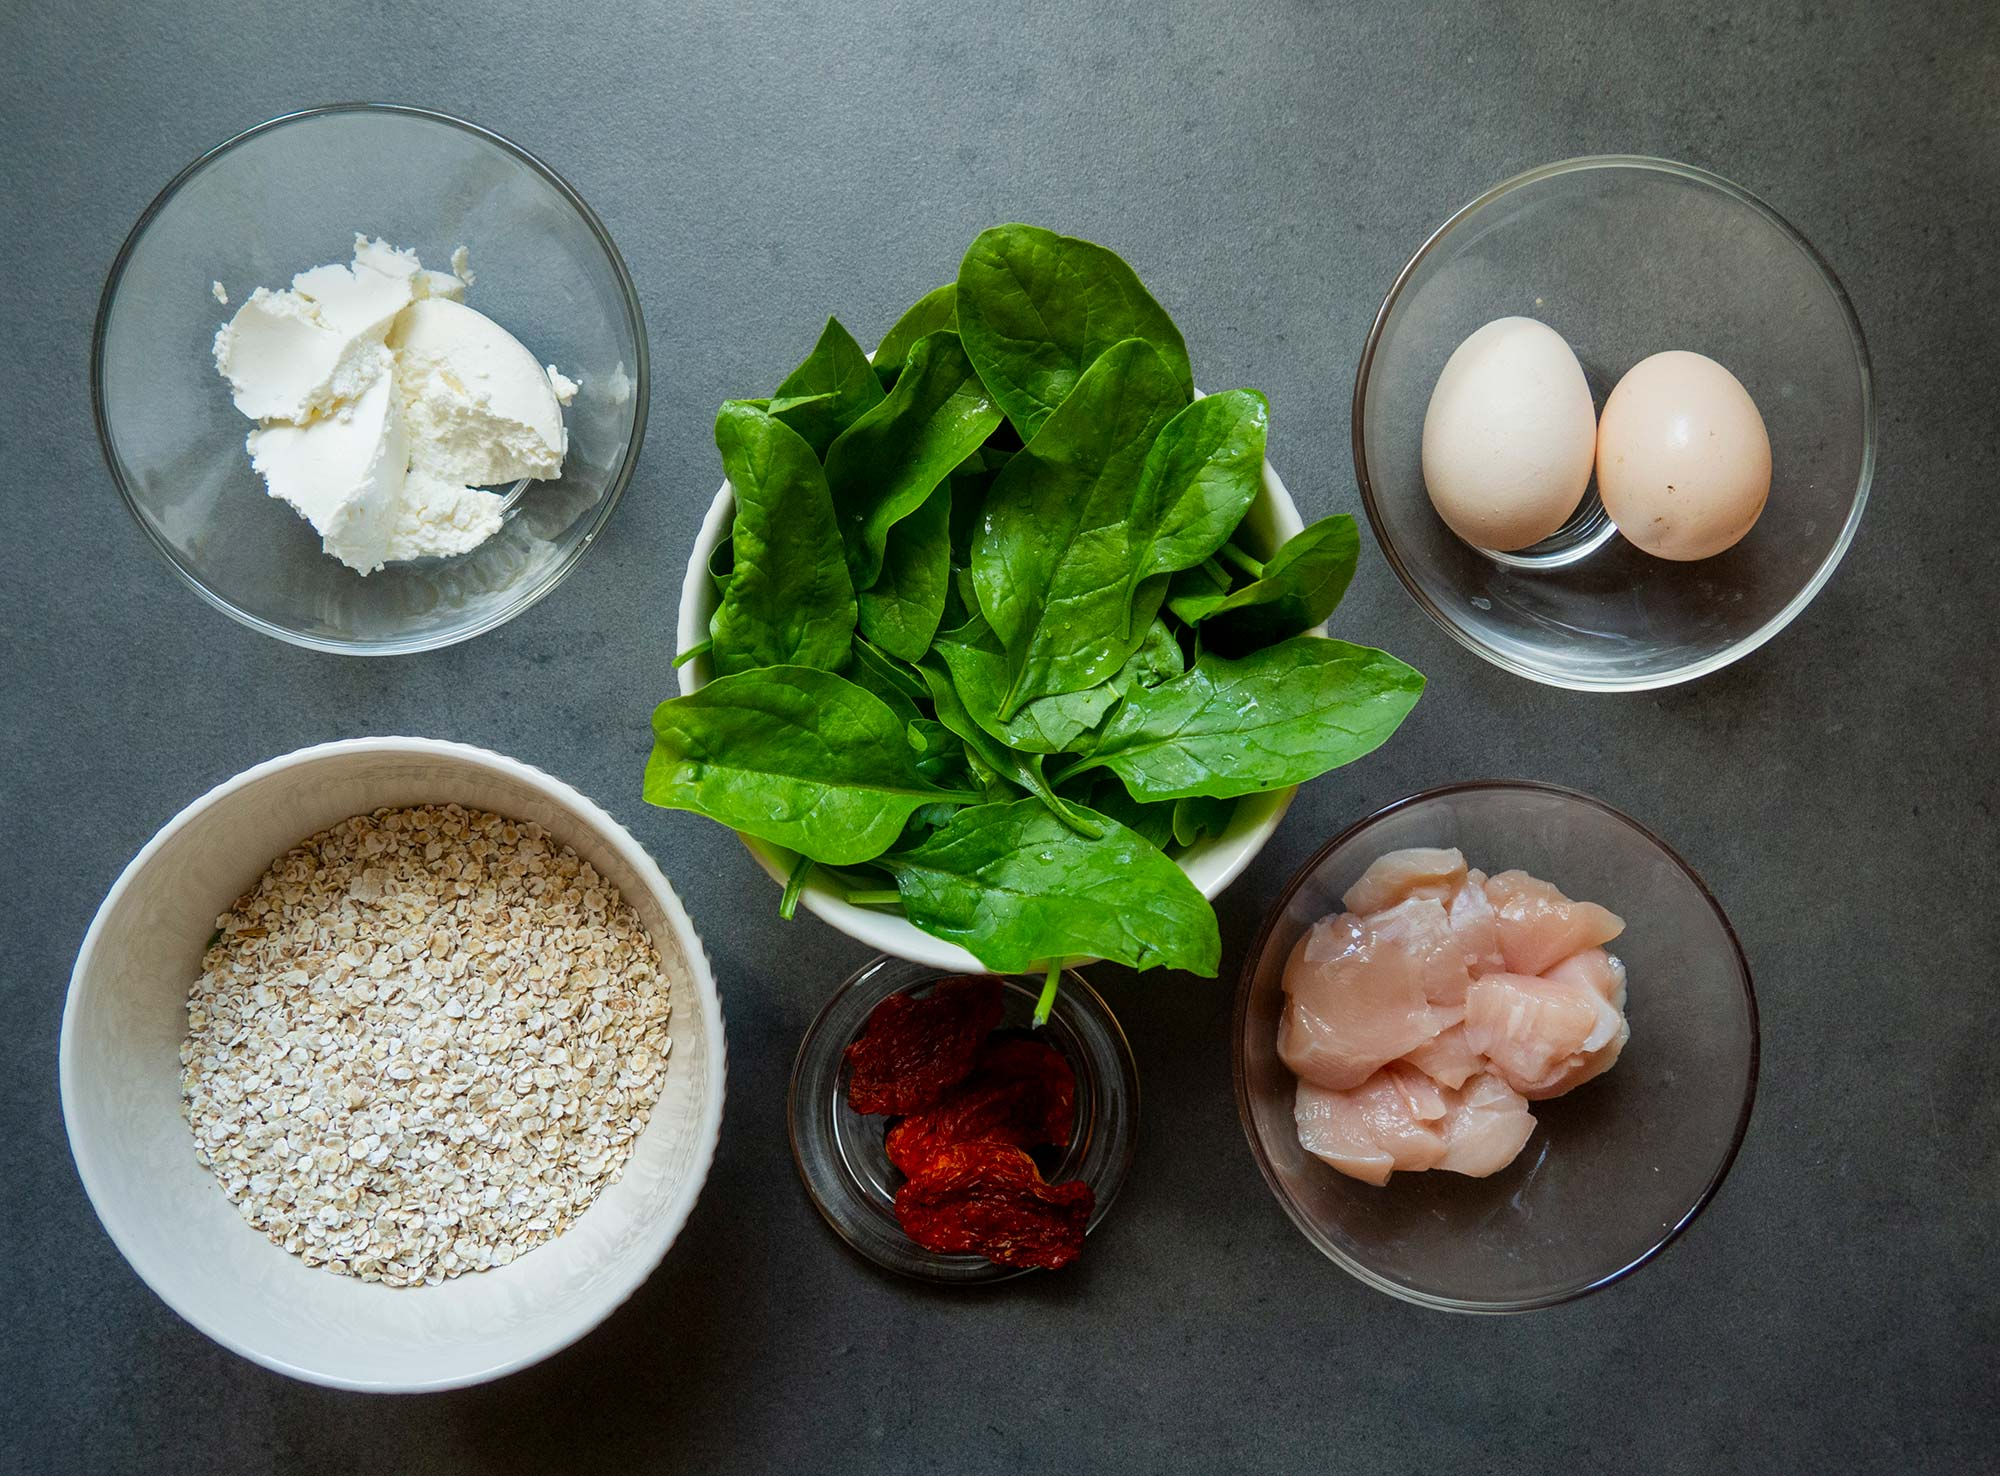 Ingredients for your lunch